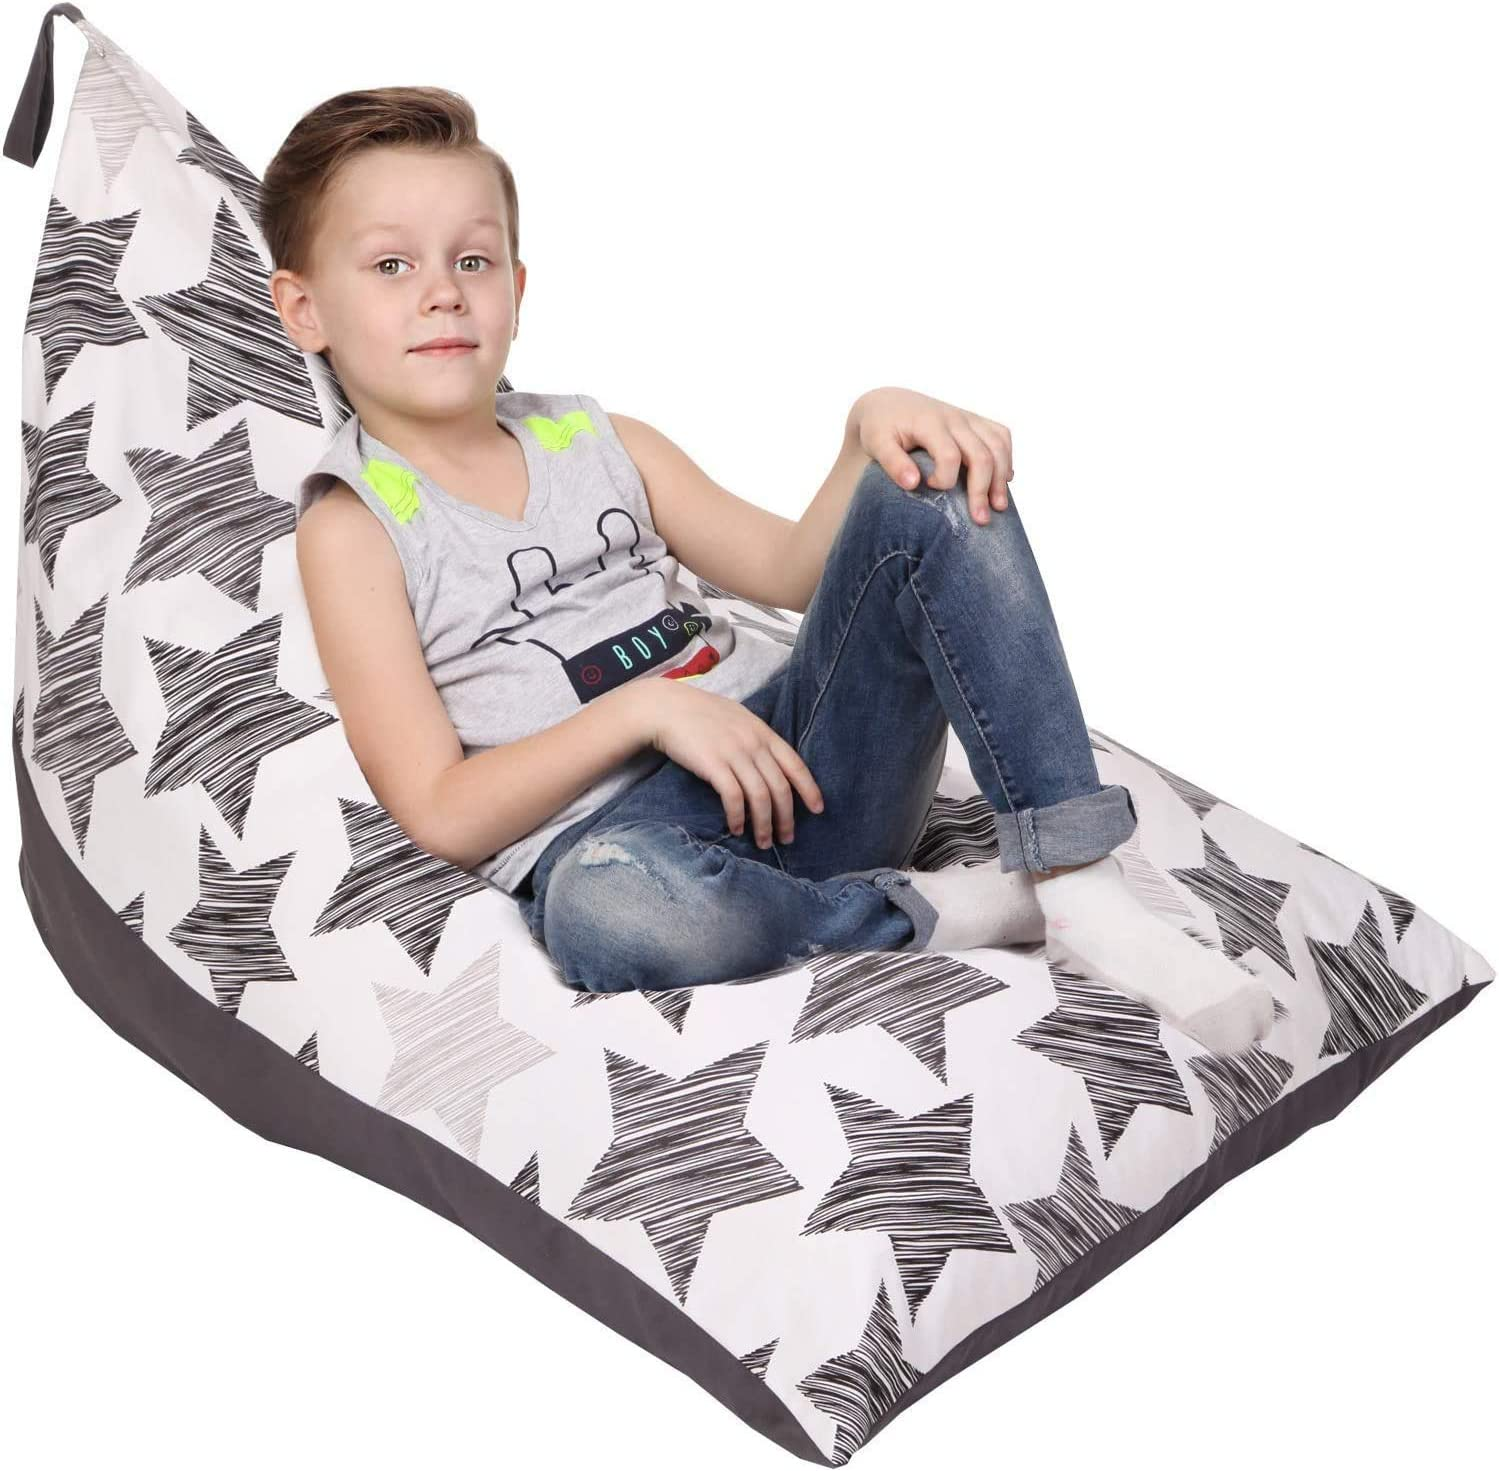 Bean Bag Chair for Kids Great Eagle Stuffed Animal Storage Bean Bag Chair Cover|38 Extra Large Cotton Canvas Grey//Marblings Toddlers and Teens |Toy Storage Bag| Boys or Girls